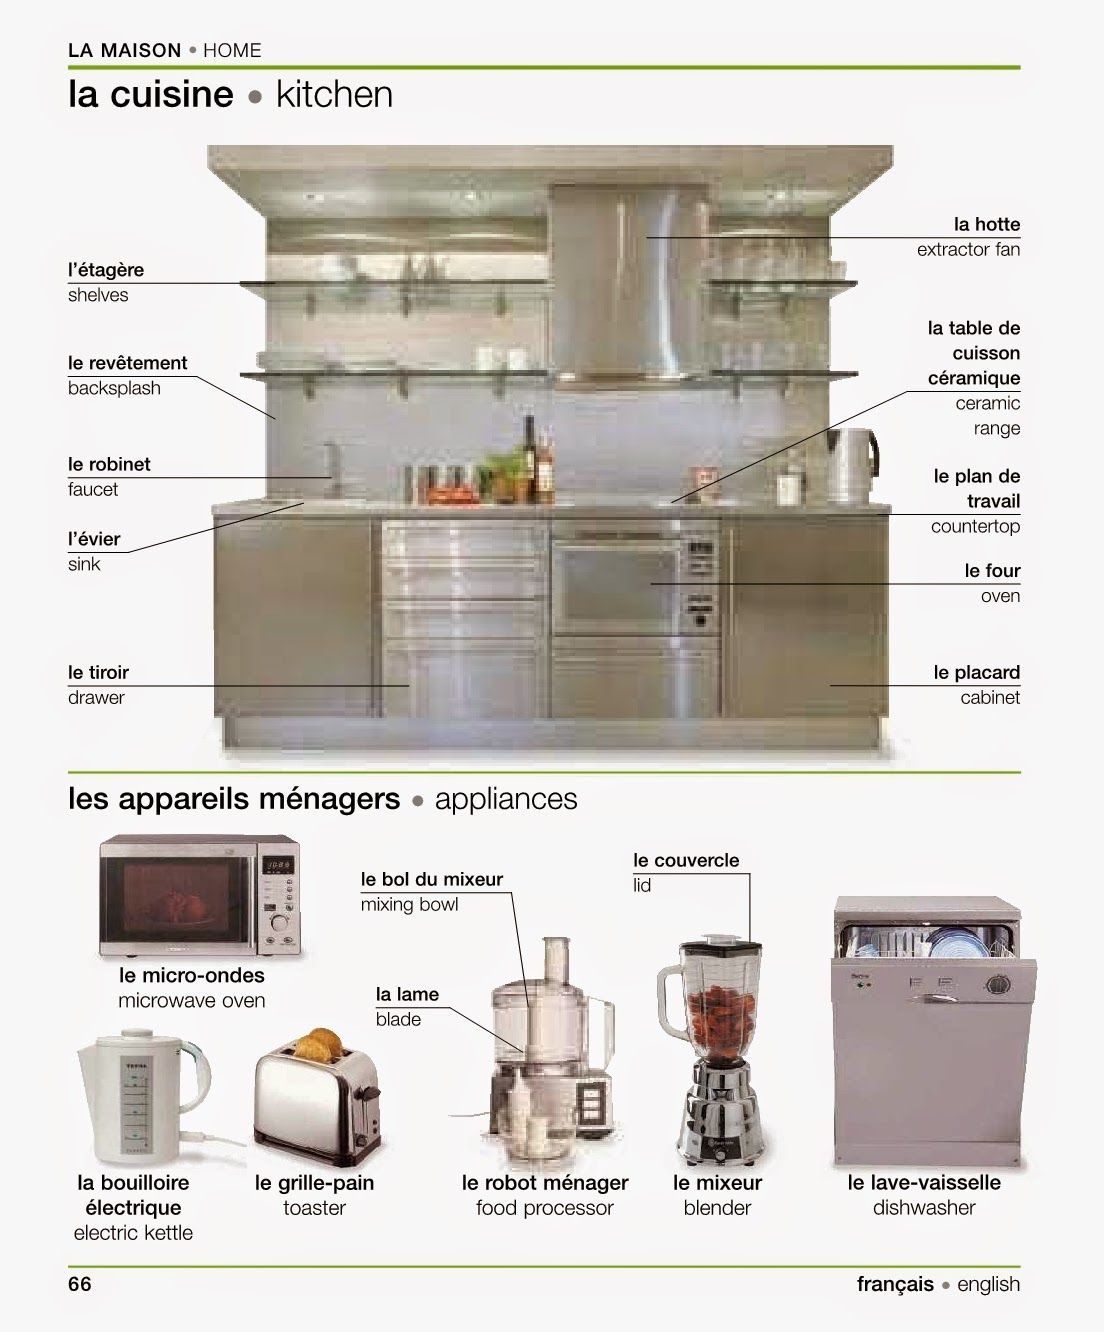 Vocabulaire la maison la cuisine vocabulary home kitchen french english visual dictionary